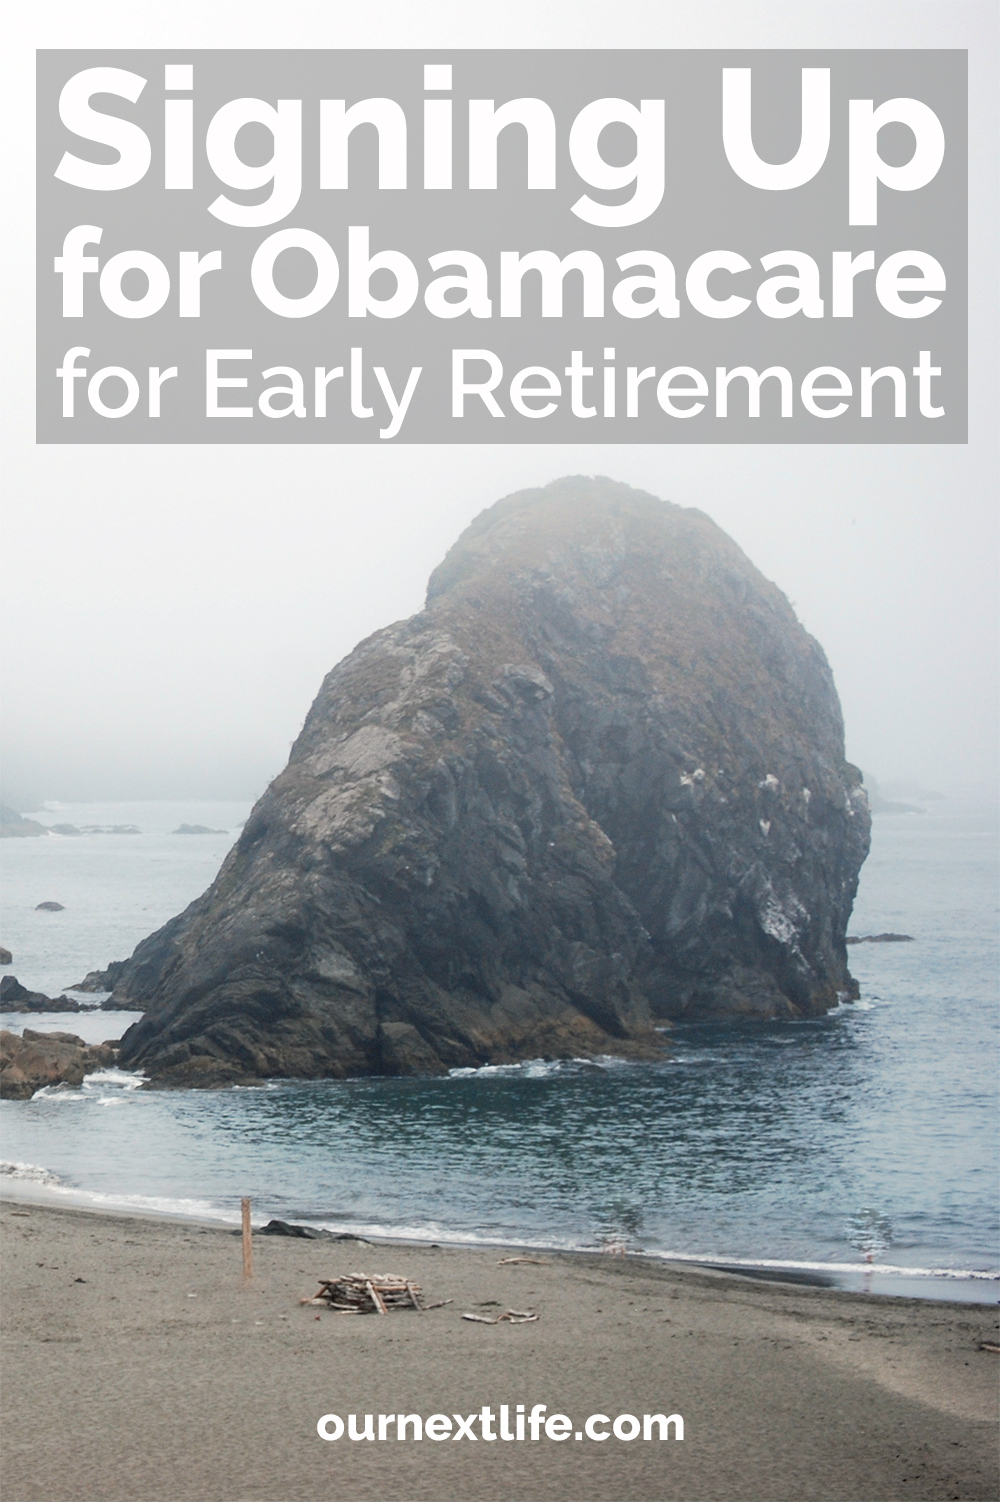 Signing up for Affordable Care Act / ACA / Obamacare health insurance for early retirement, as early retirees